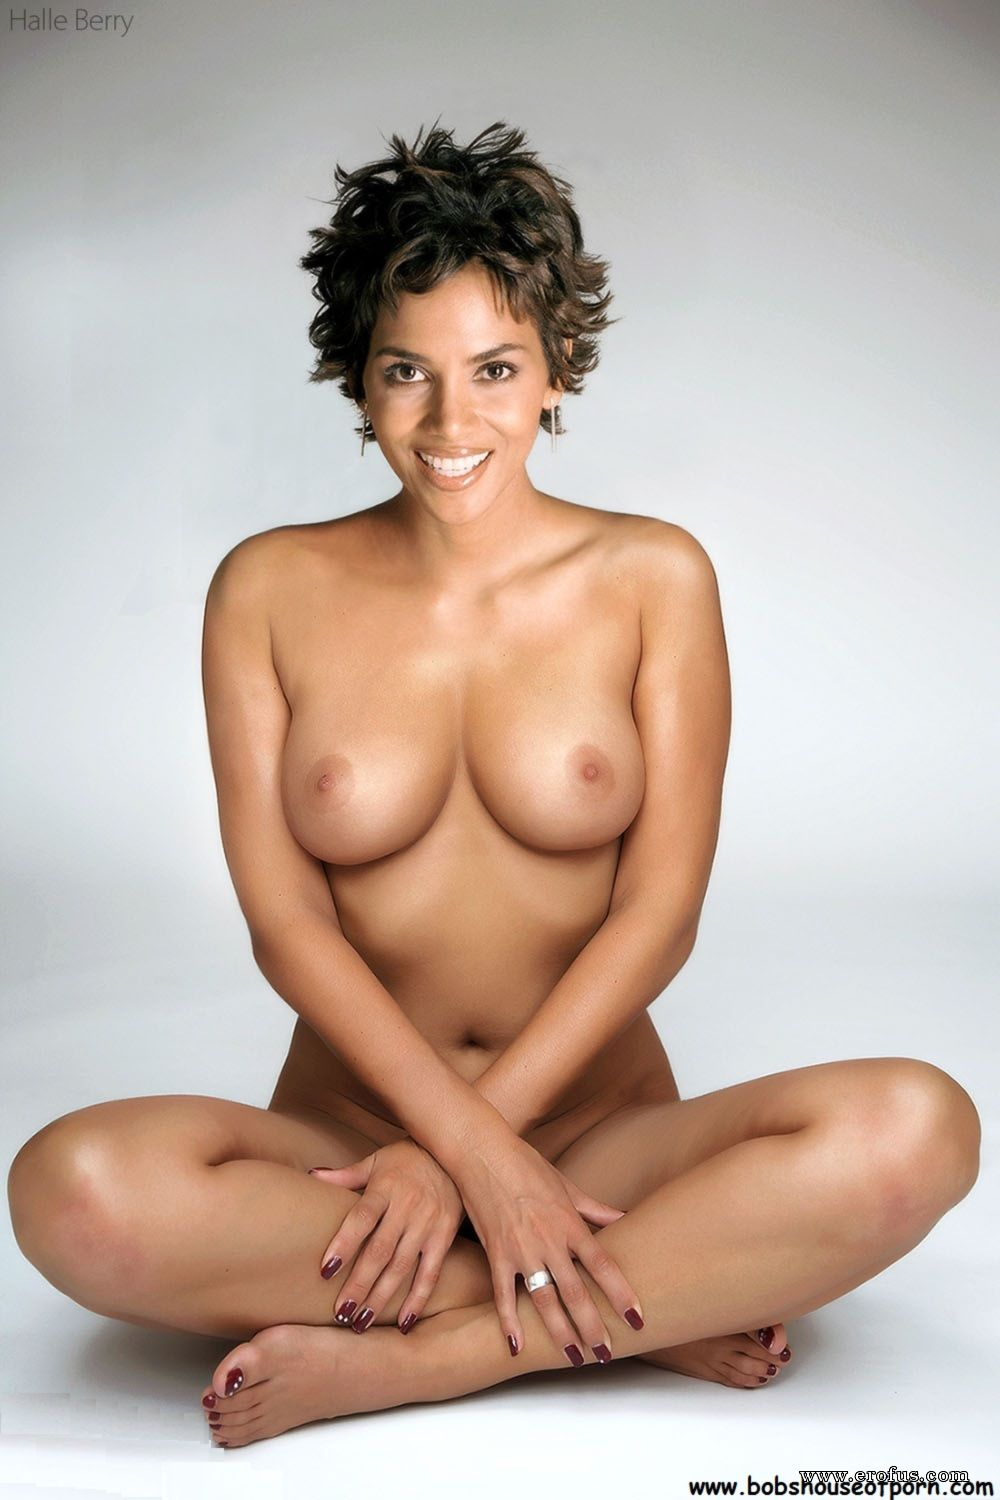 Hot naked halle berry pics — 13